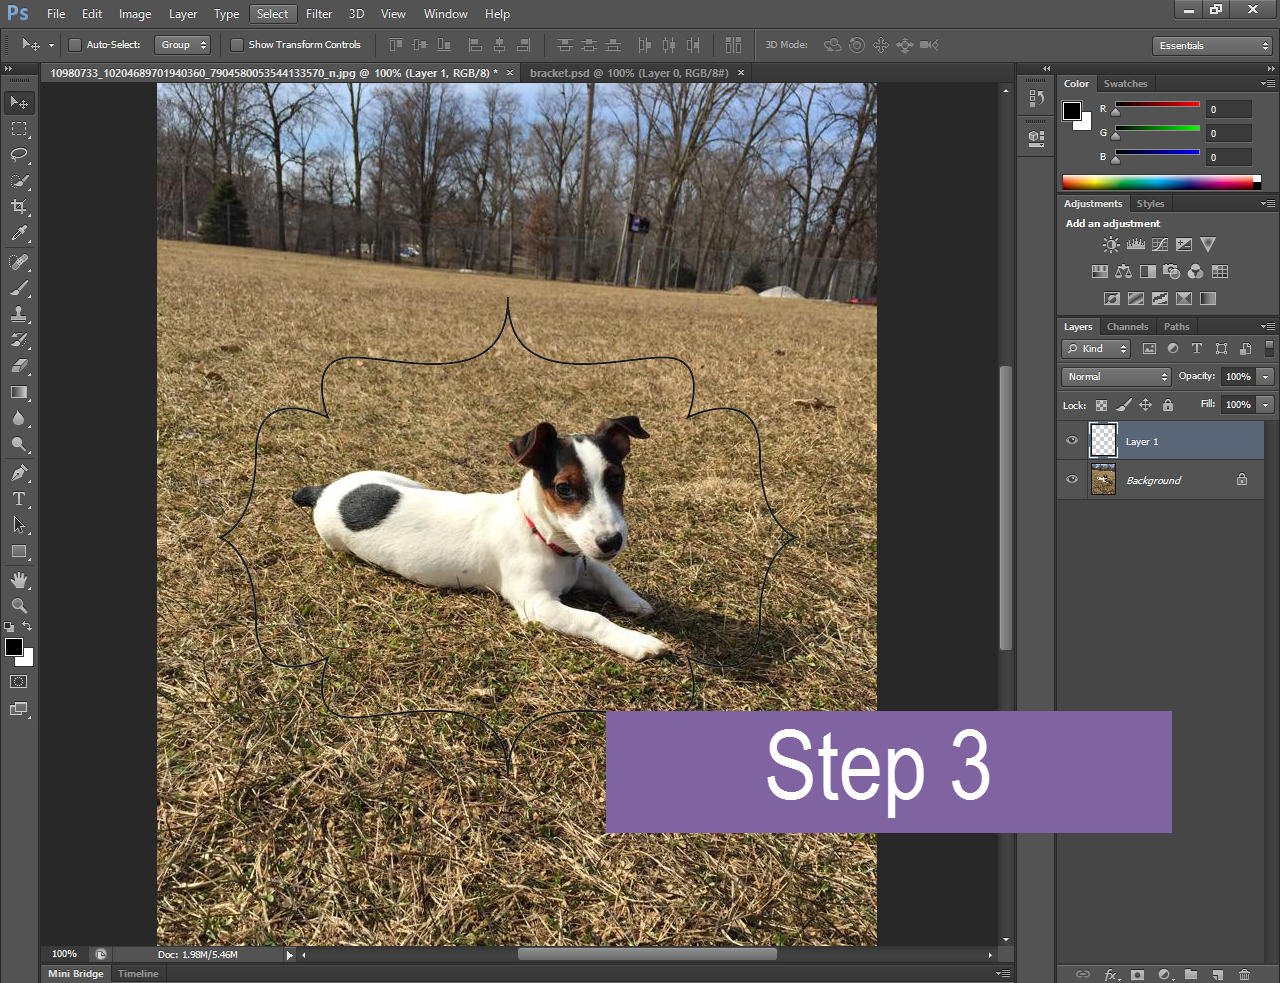 a puppy image open in Photoshop with a bracket-shaped graphic placed on a different layer overtop